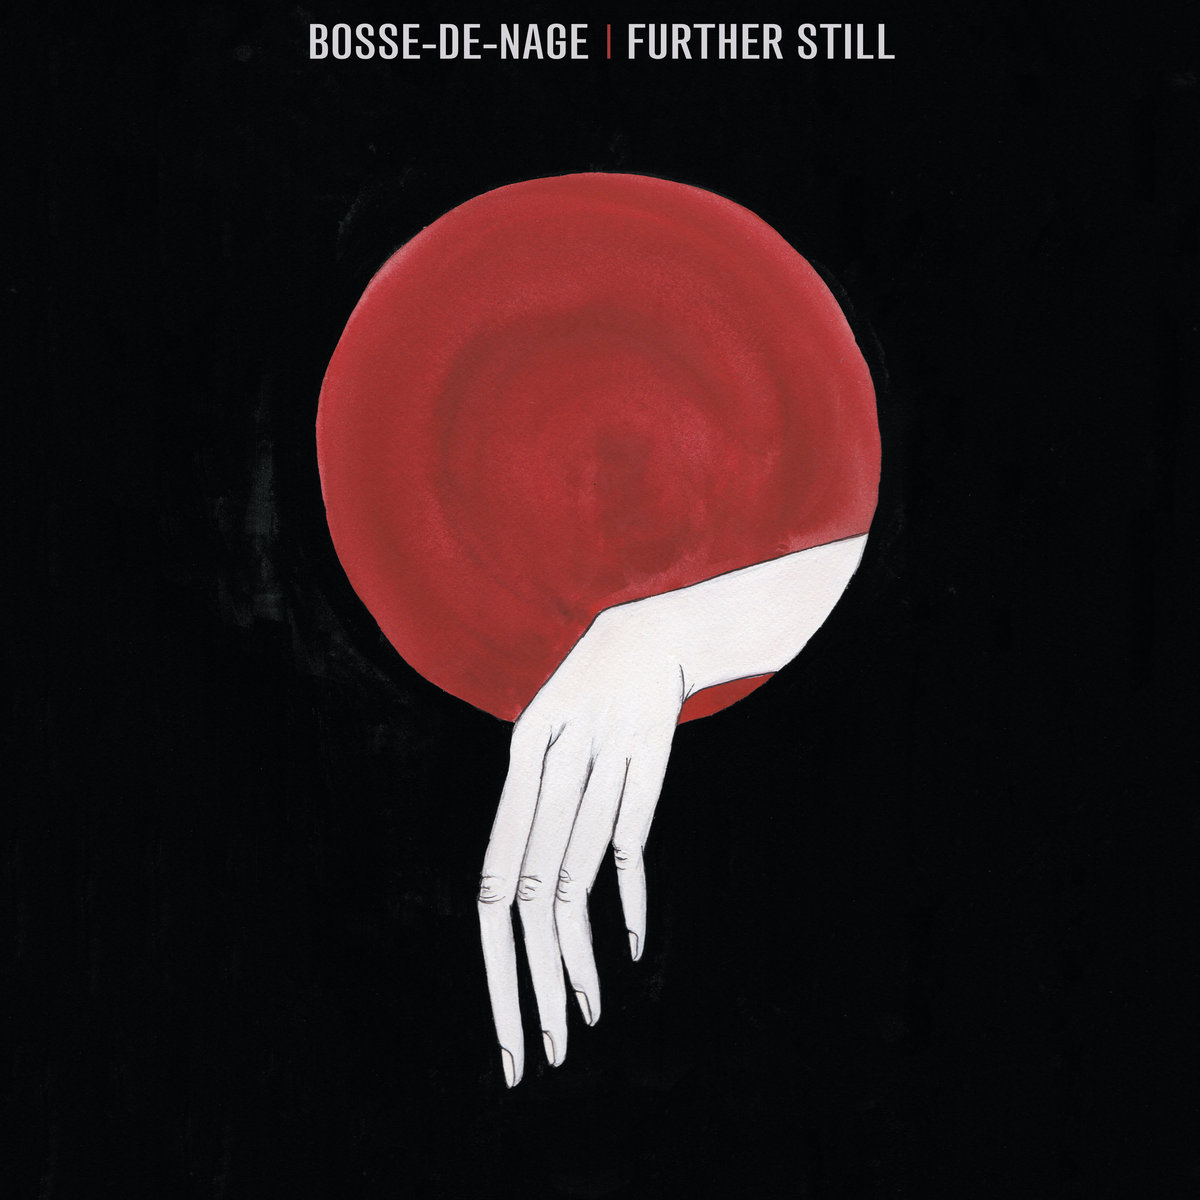 20. Bosse-de-Nage - Further Still - Bosse-de-Nage sit right in the middle where hardcore meets black metal; breakdowns and accelerated d-beats/blastbeats are accentuated by harsh, shrieking vocals which are then layered on top of tremolo-picked, quasi-melodic riffs. For my money, a much grittier and chaotic sound compared to others that flirt with this mixture (Deafheaven or Ghost Bath).